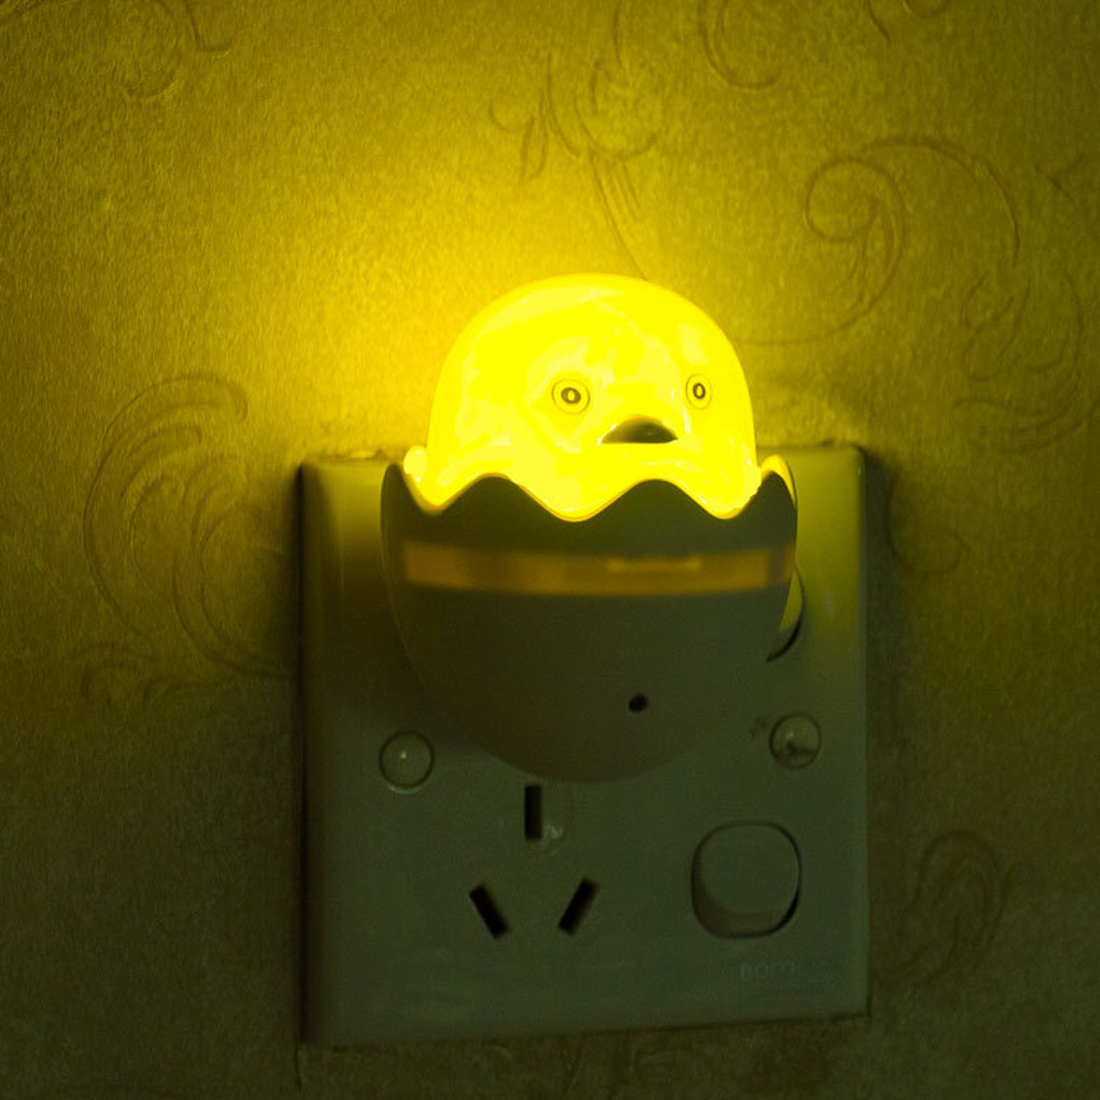 AC 110-220V Duck Light Control Sensor Gift For Children Cute LED Night Light Wall Socket Lamps Bedroom Lamp Yellow US Plug